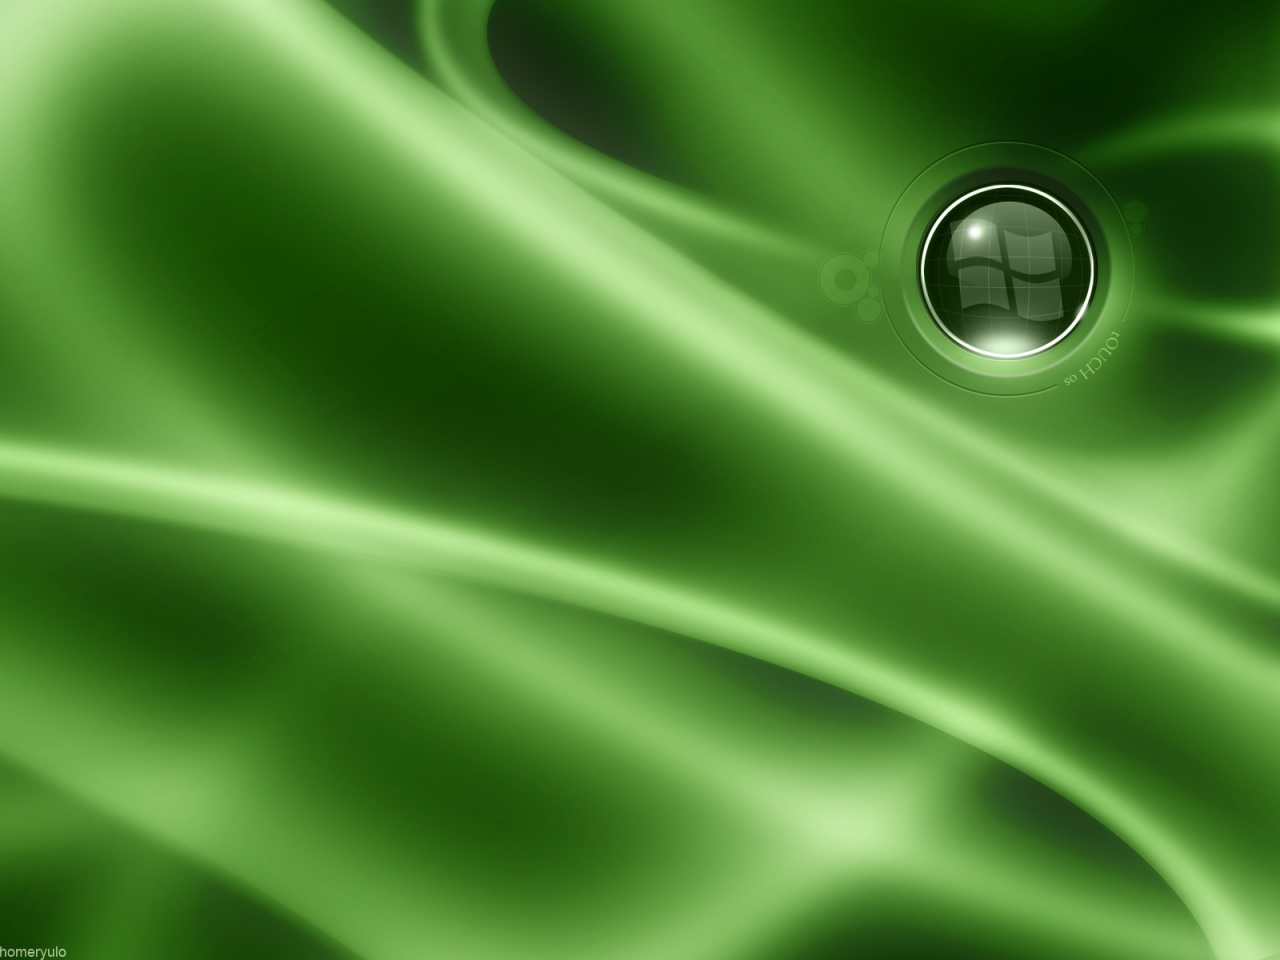 1280x1024 Green Desktop